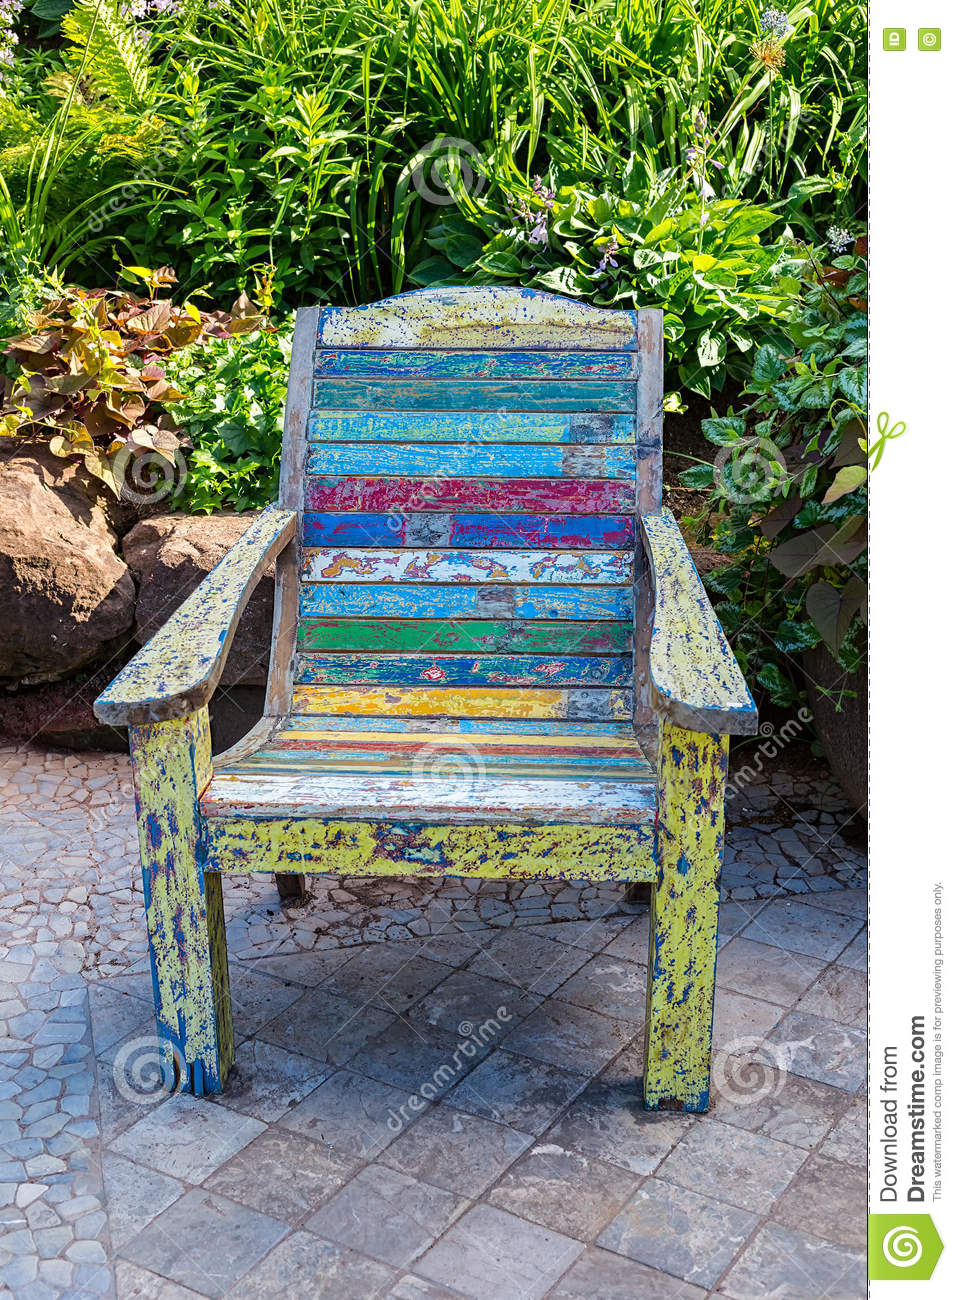 Garden Chair stock photo. Image of nature, wooden, leaves ...